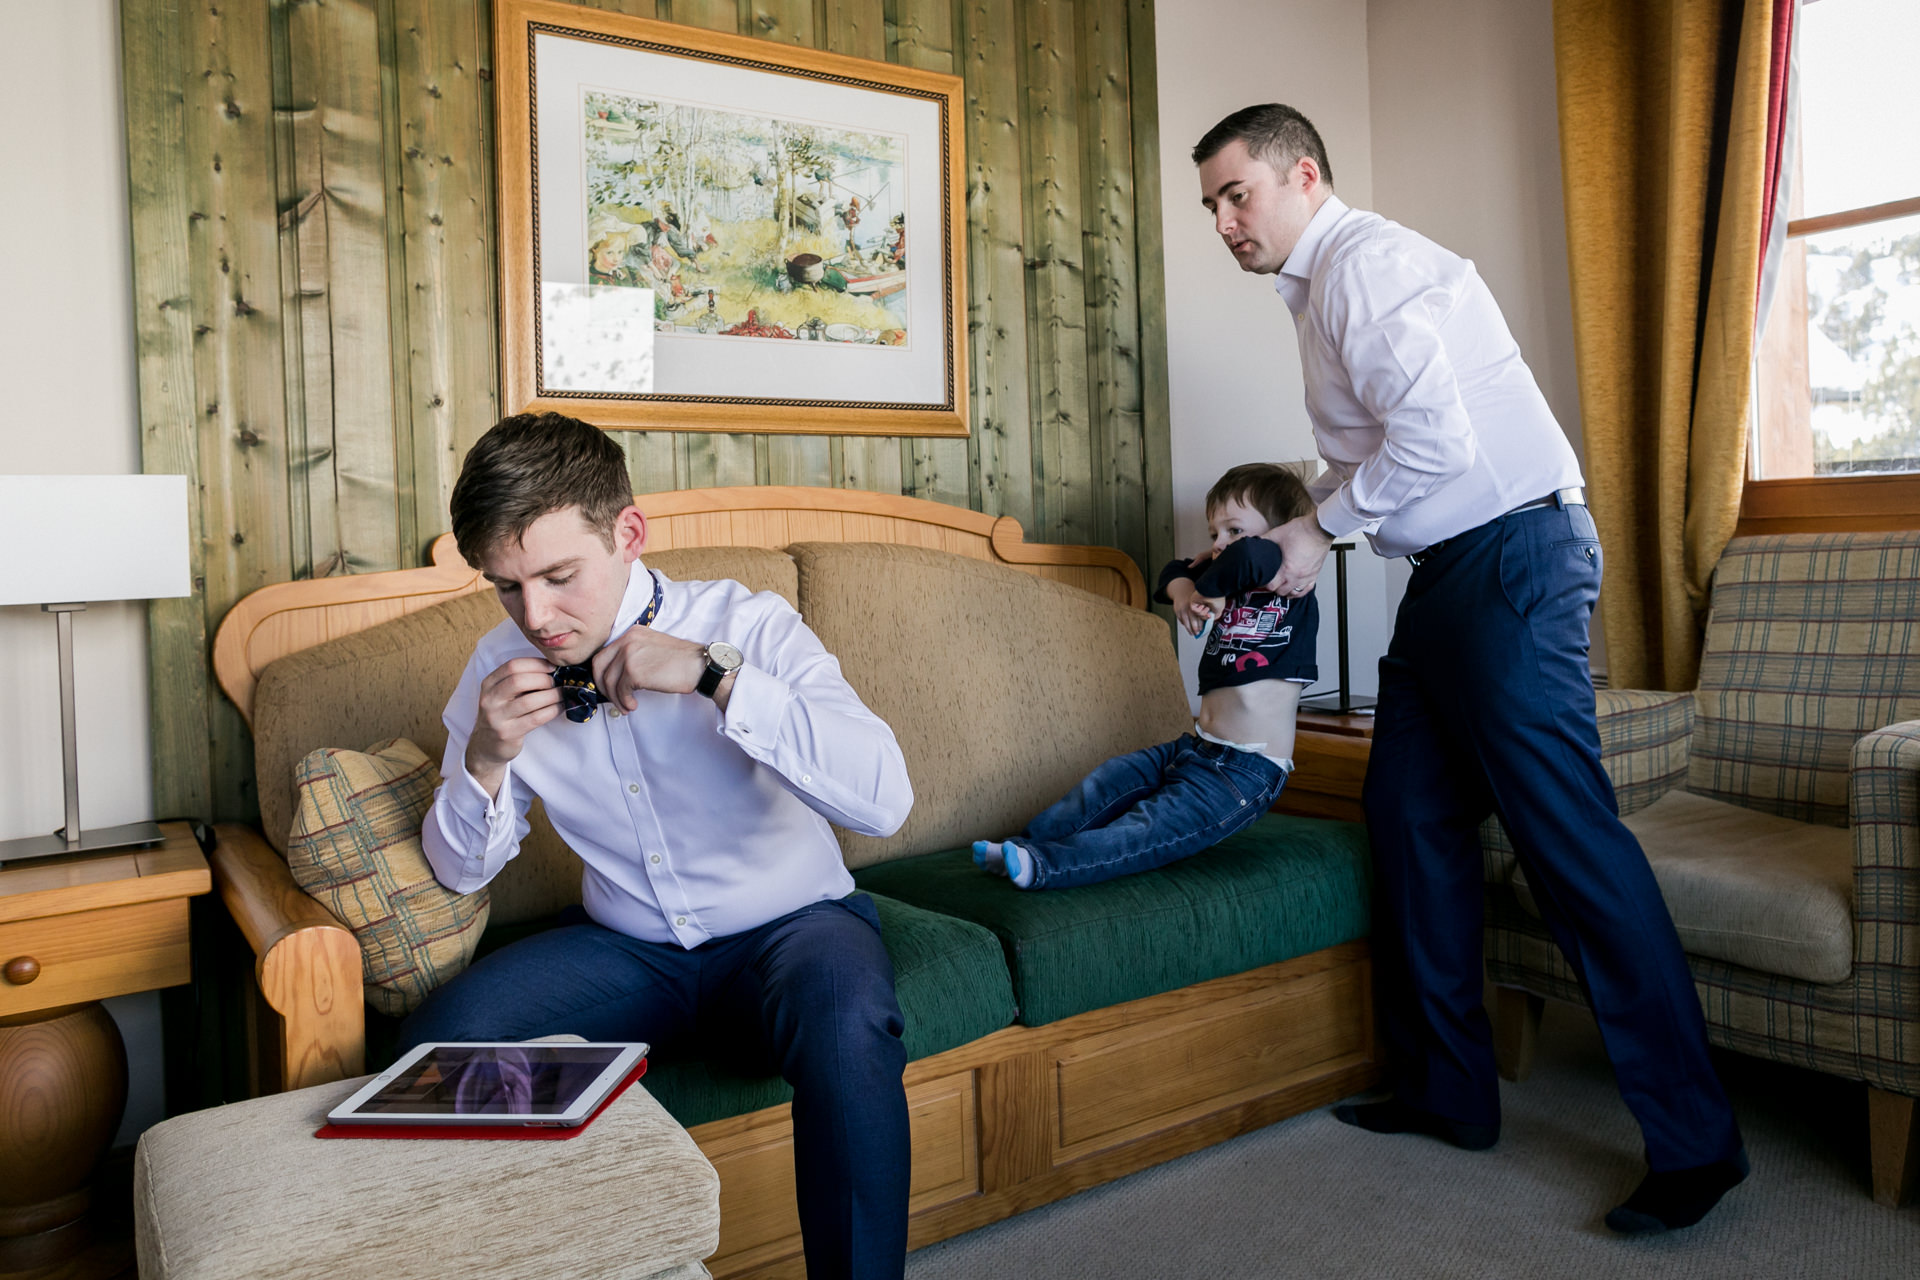 Les Arcs Elopement Picture | The groom checks out an online tutorial for how to tie a bow tie